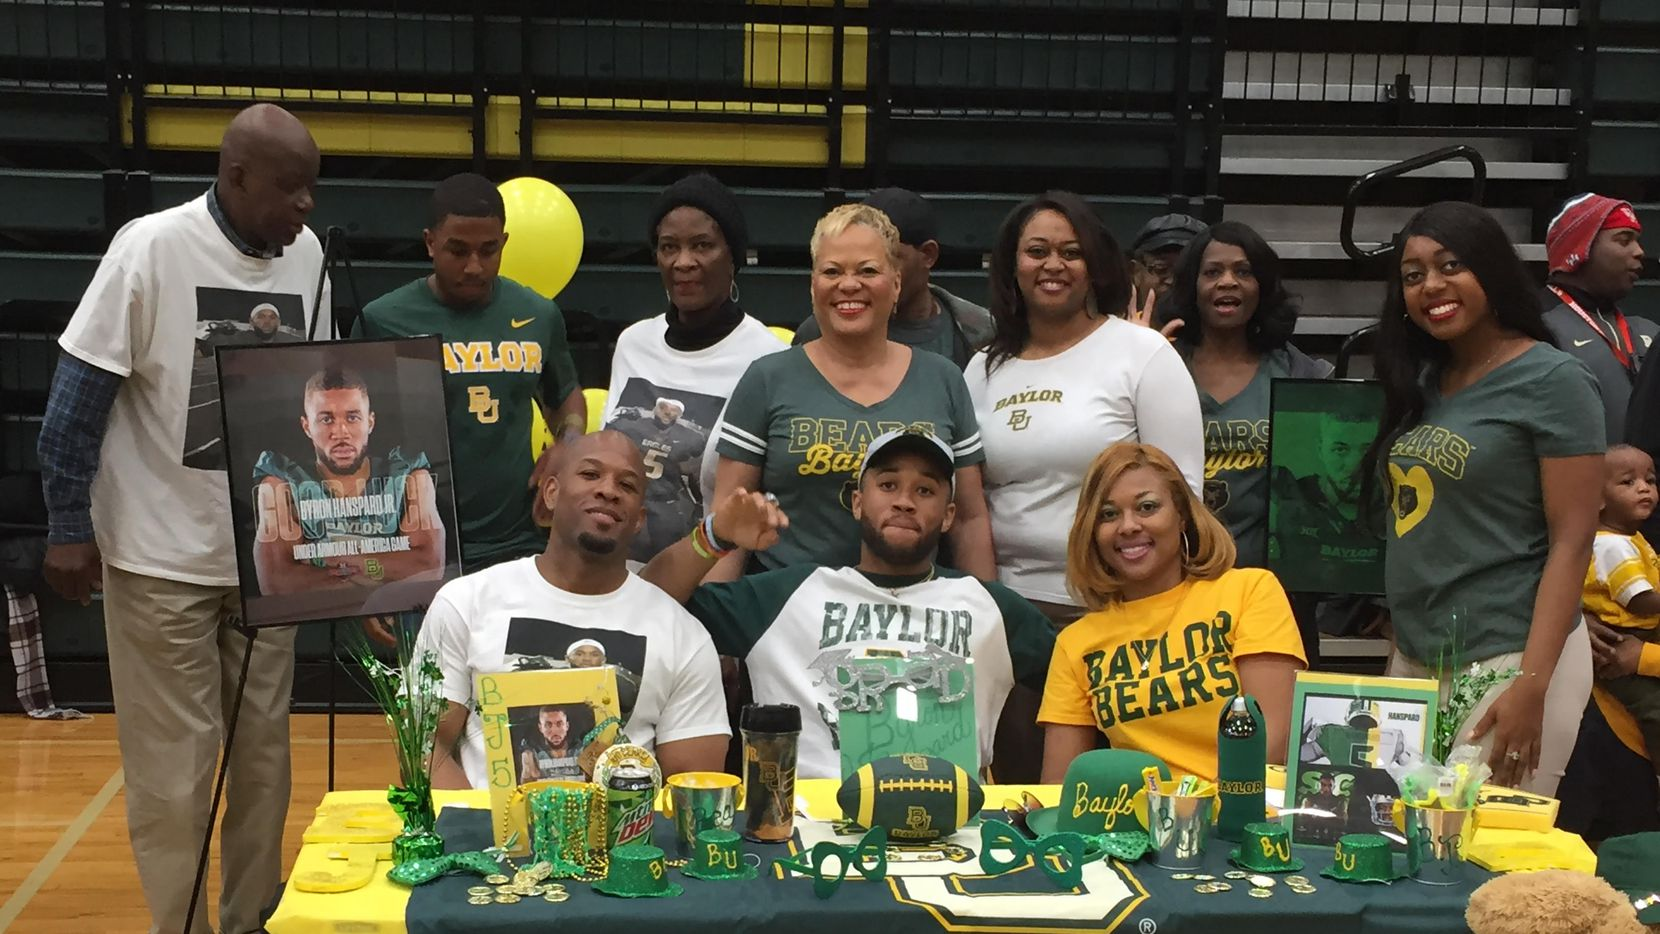 DeSoto defensive back Byron Hanspard Jr. was surrounded by his family at the school's signing day ceremony Wednesday. He was honored for signing with Baylor during the early signing period in December.